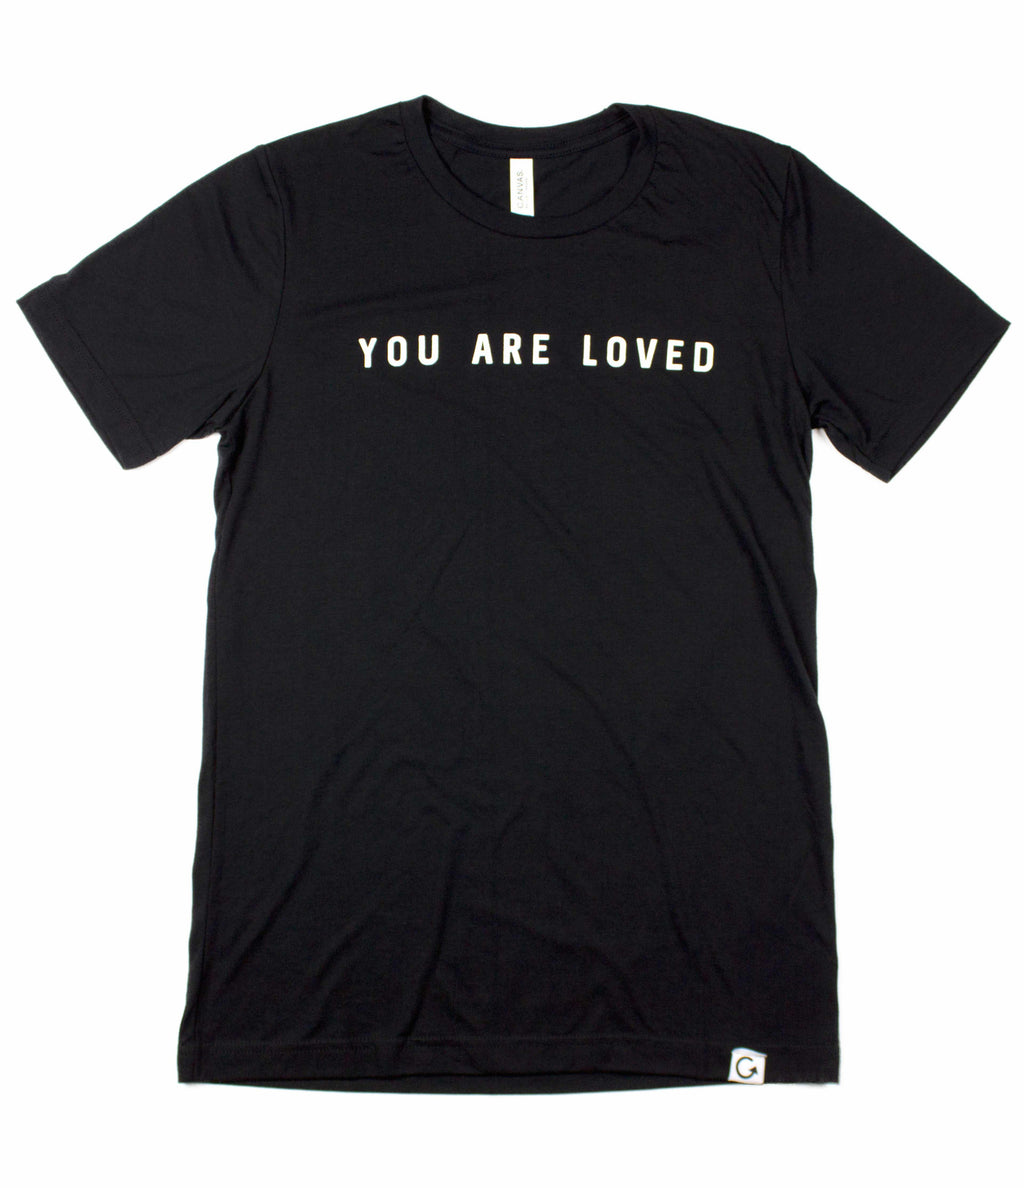 YOU ARE LOVED BLACK T-SHIRT